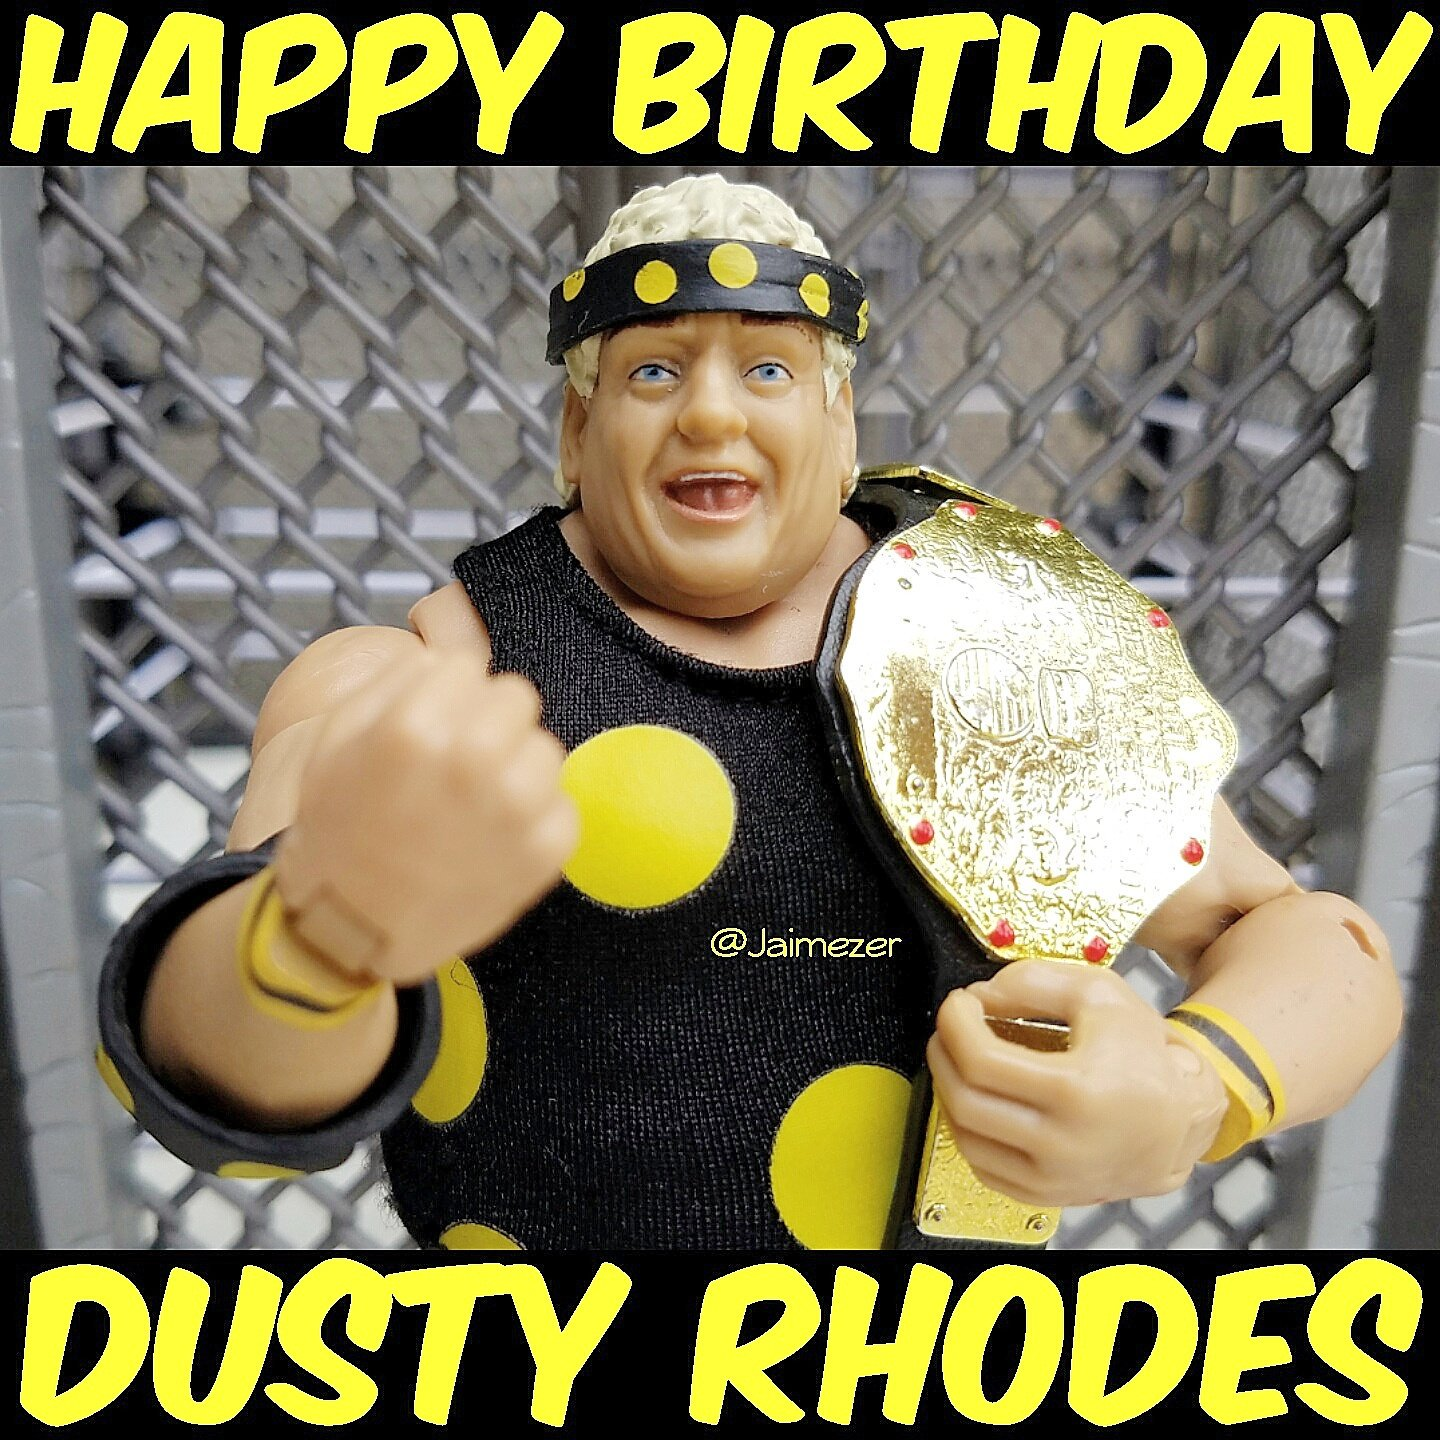 Happy Birthday to WWE Hall of Famer, the American Dream, Dusty Rhodes! RIP Dusty!